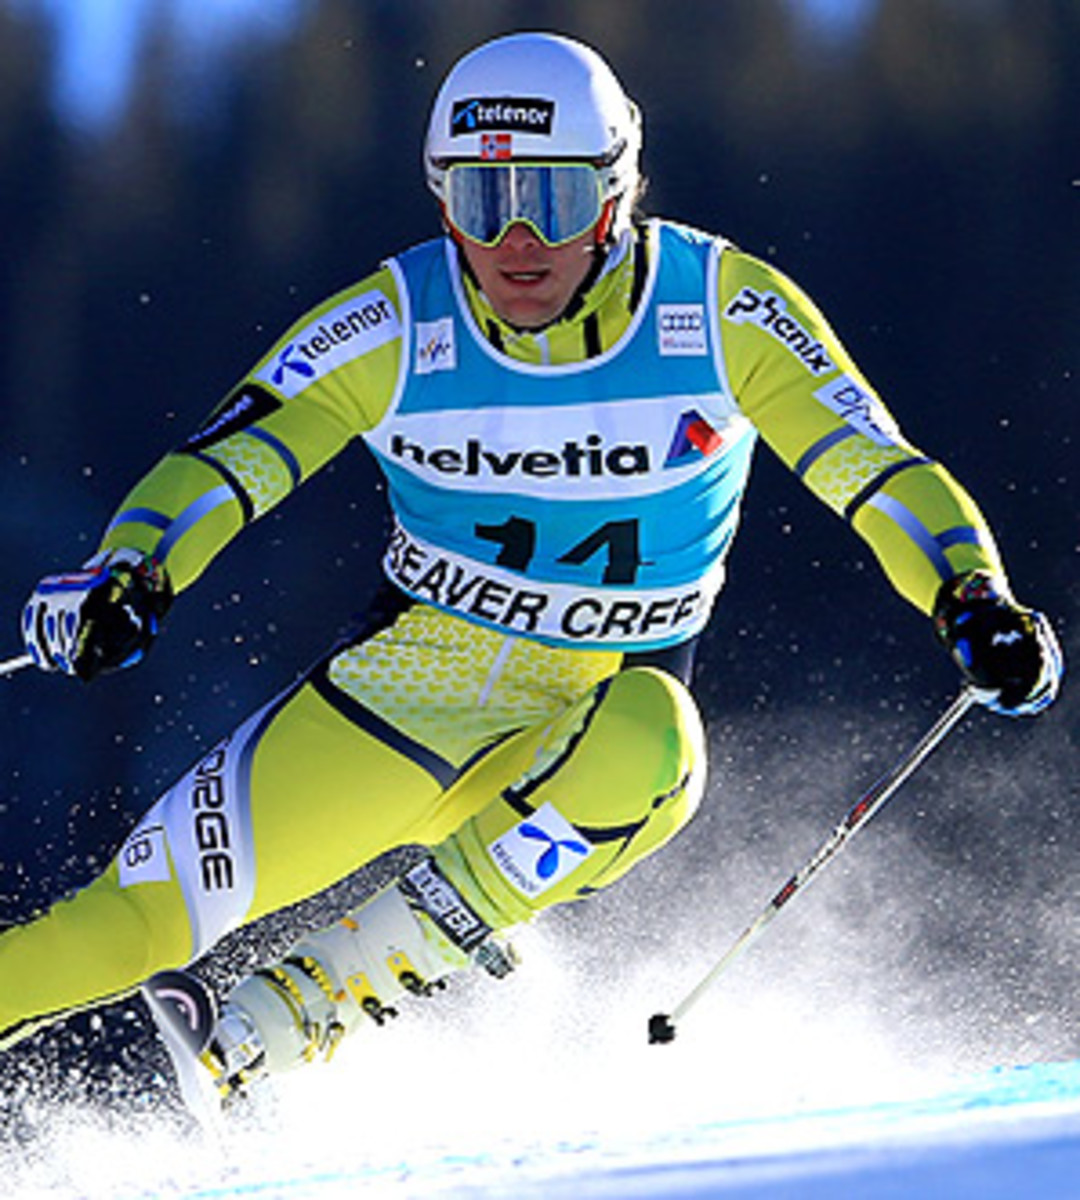 Norway's Kjetil Jansrud finished second to Aksel Lund Svindal in the downhill training on the Saslong course.